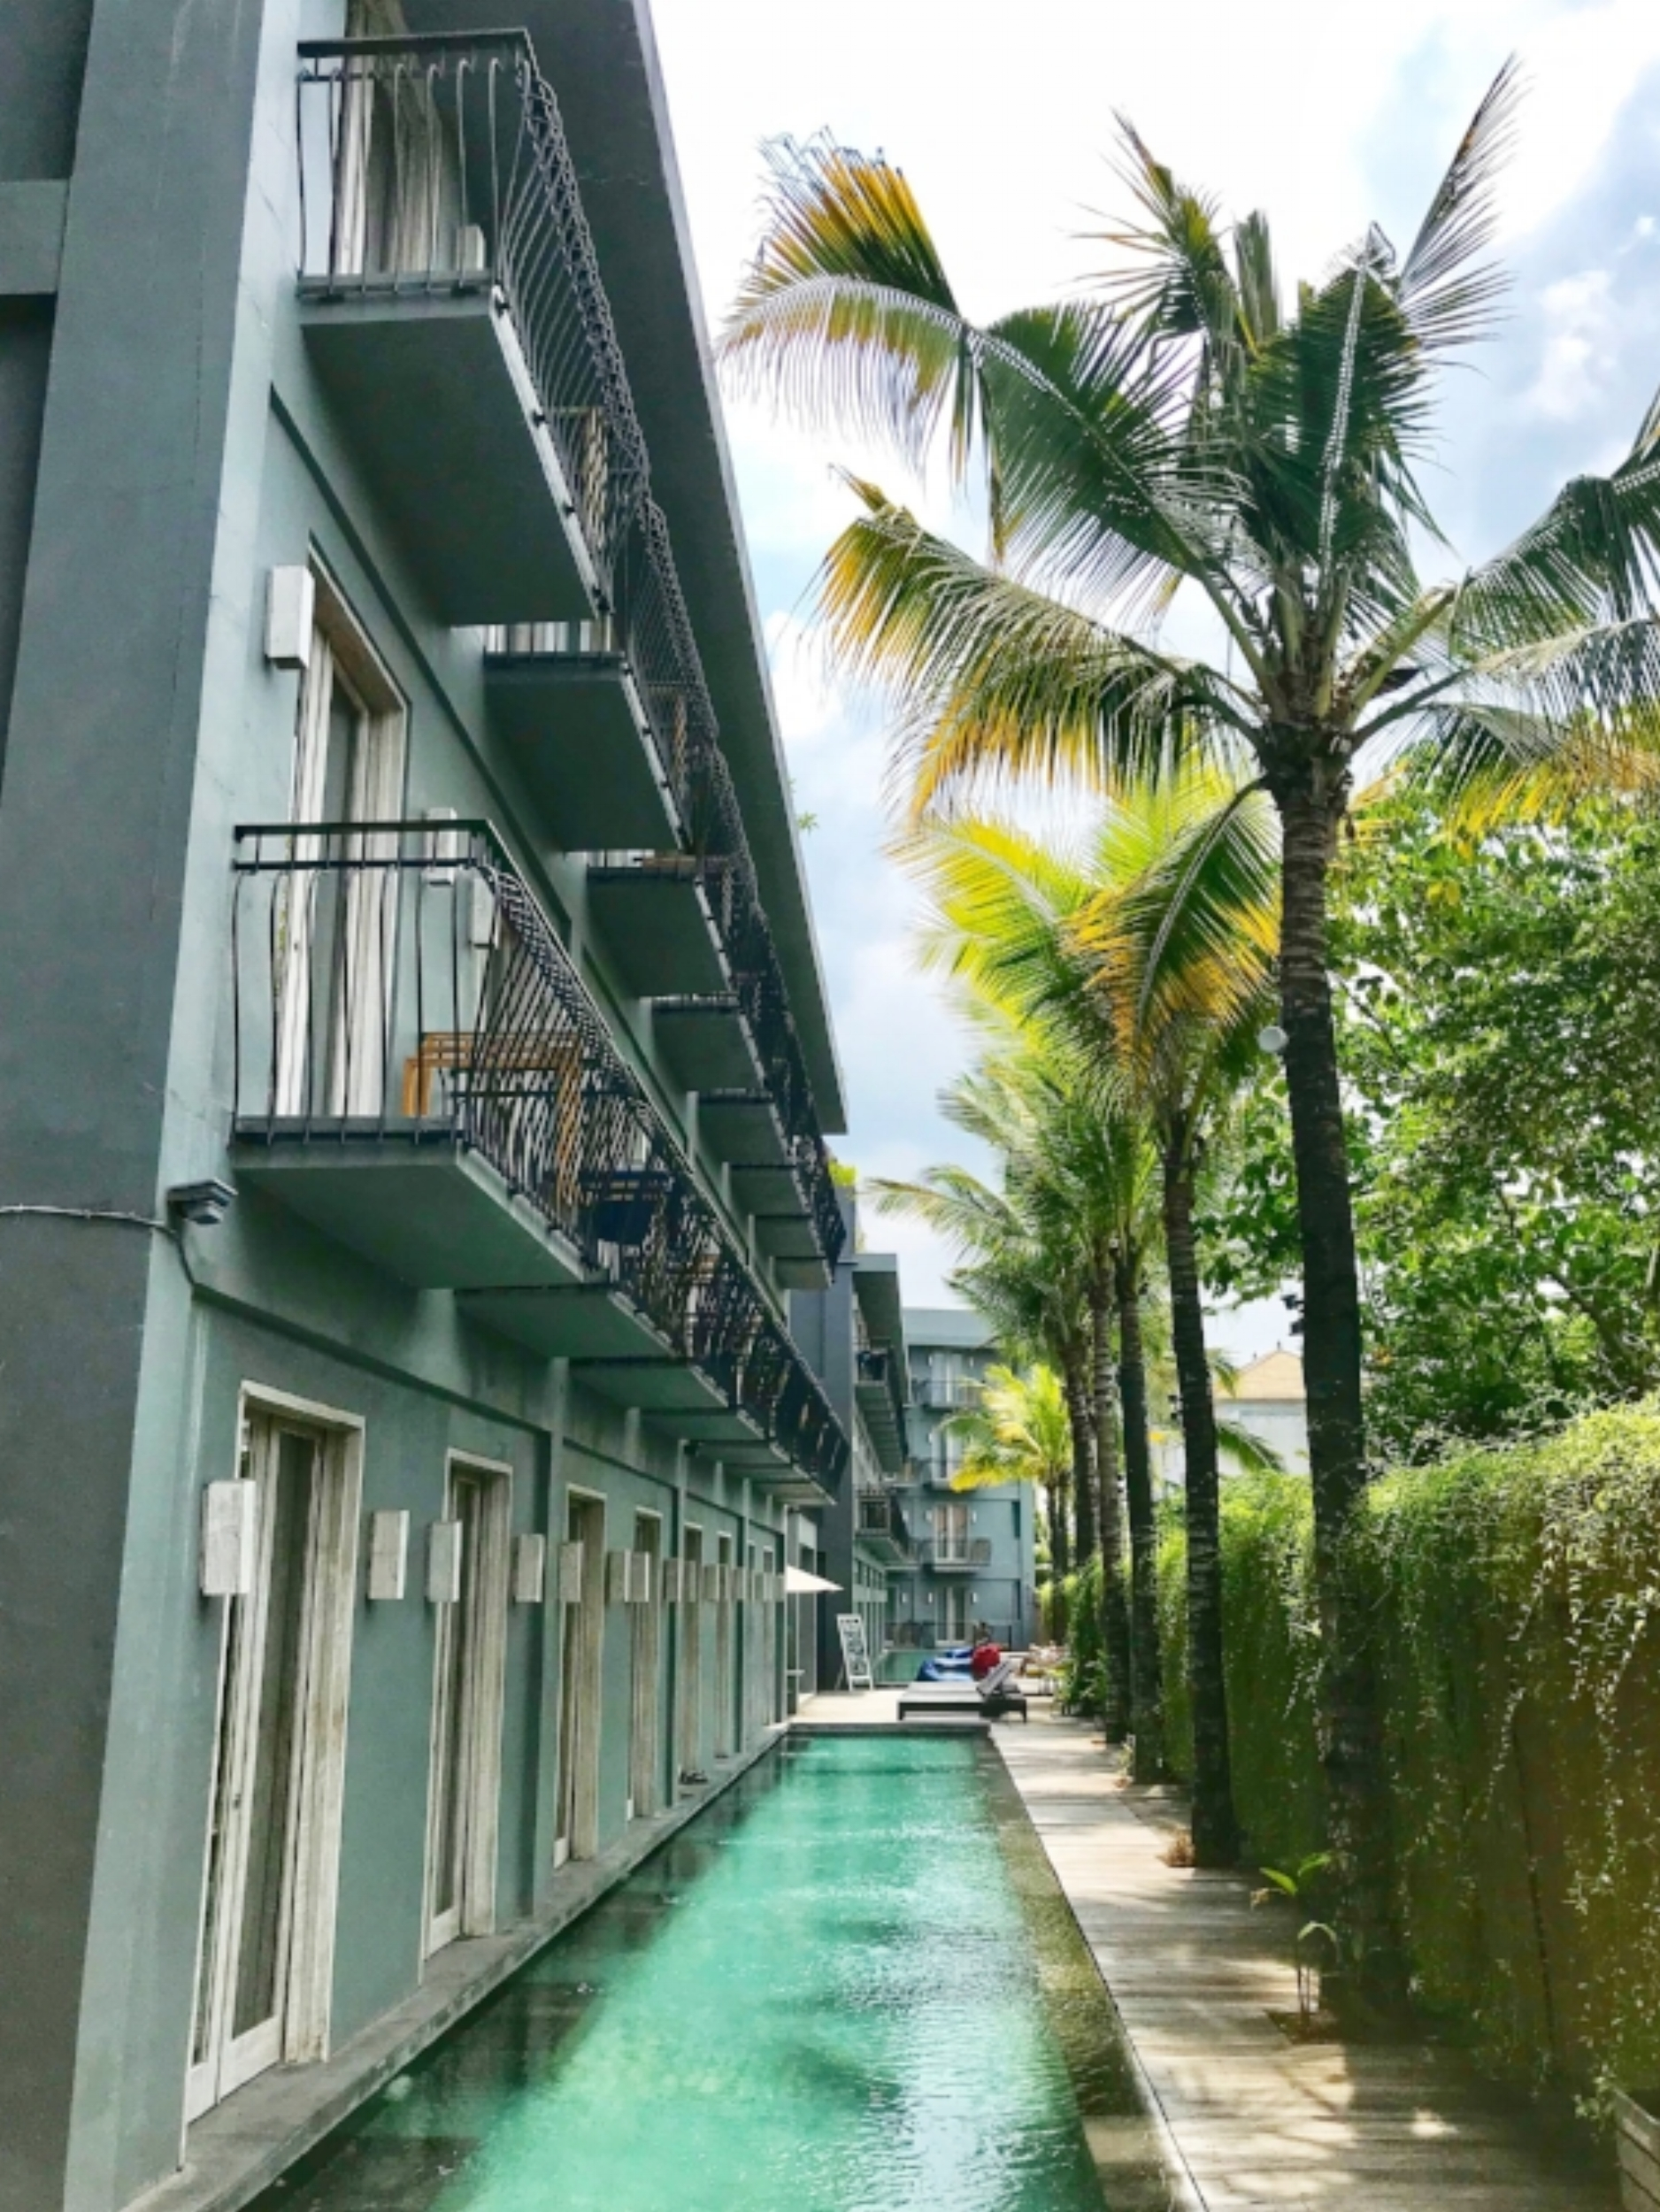 FRii Hotel in Canggu Bali affordable accommodation